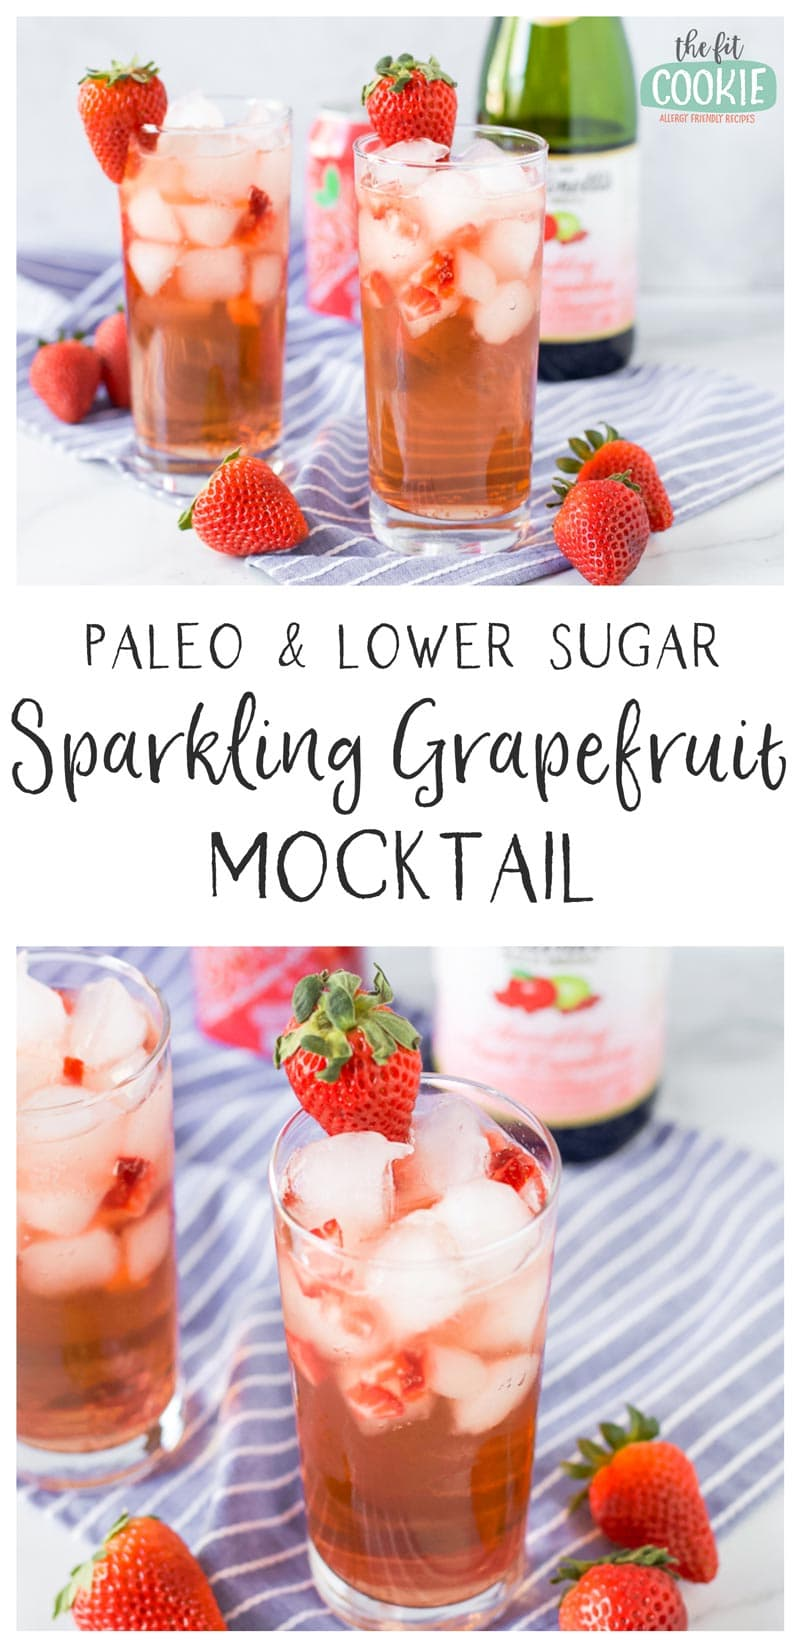 image collage of paleo grapefruit mocktail with strawberries